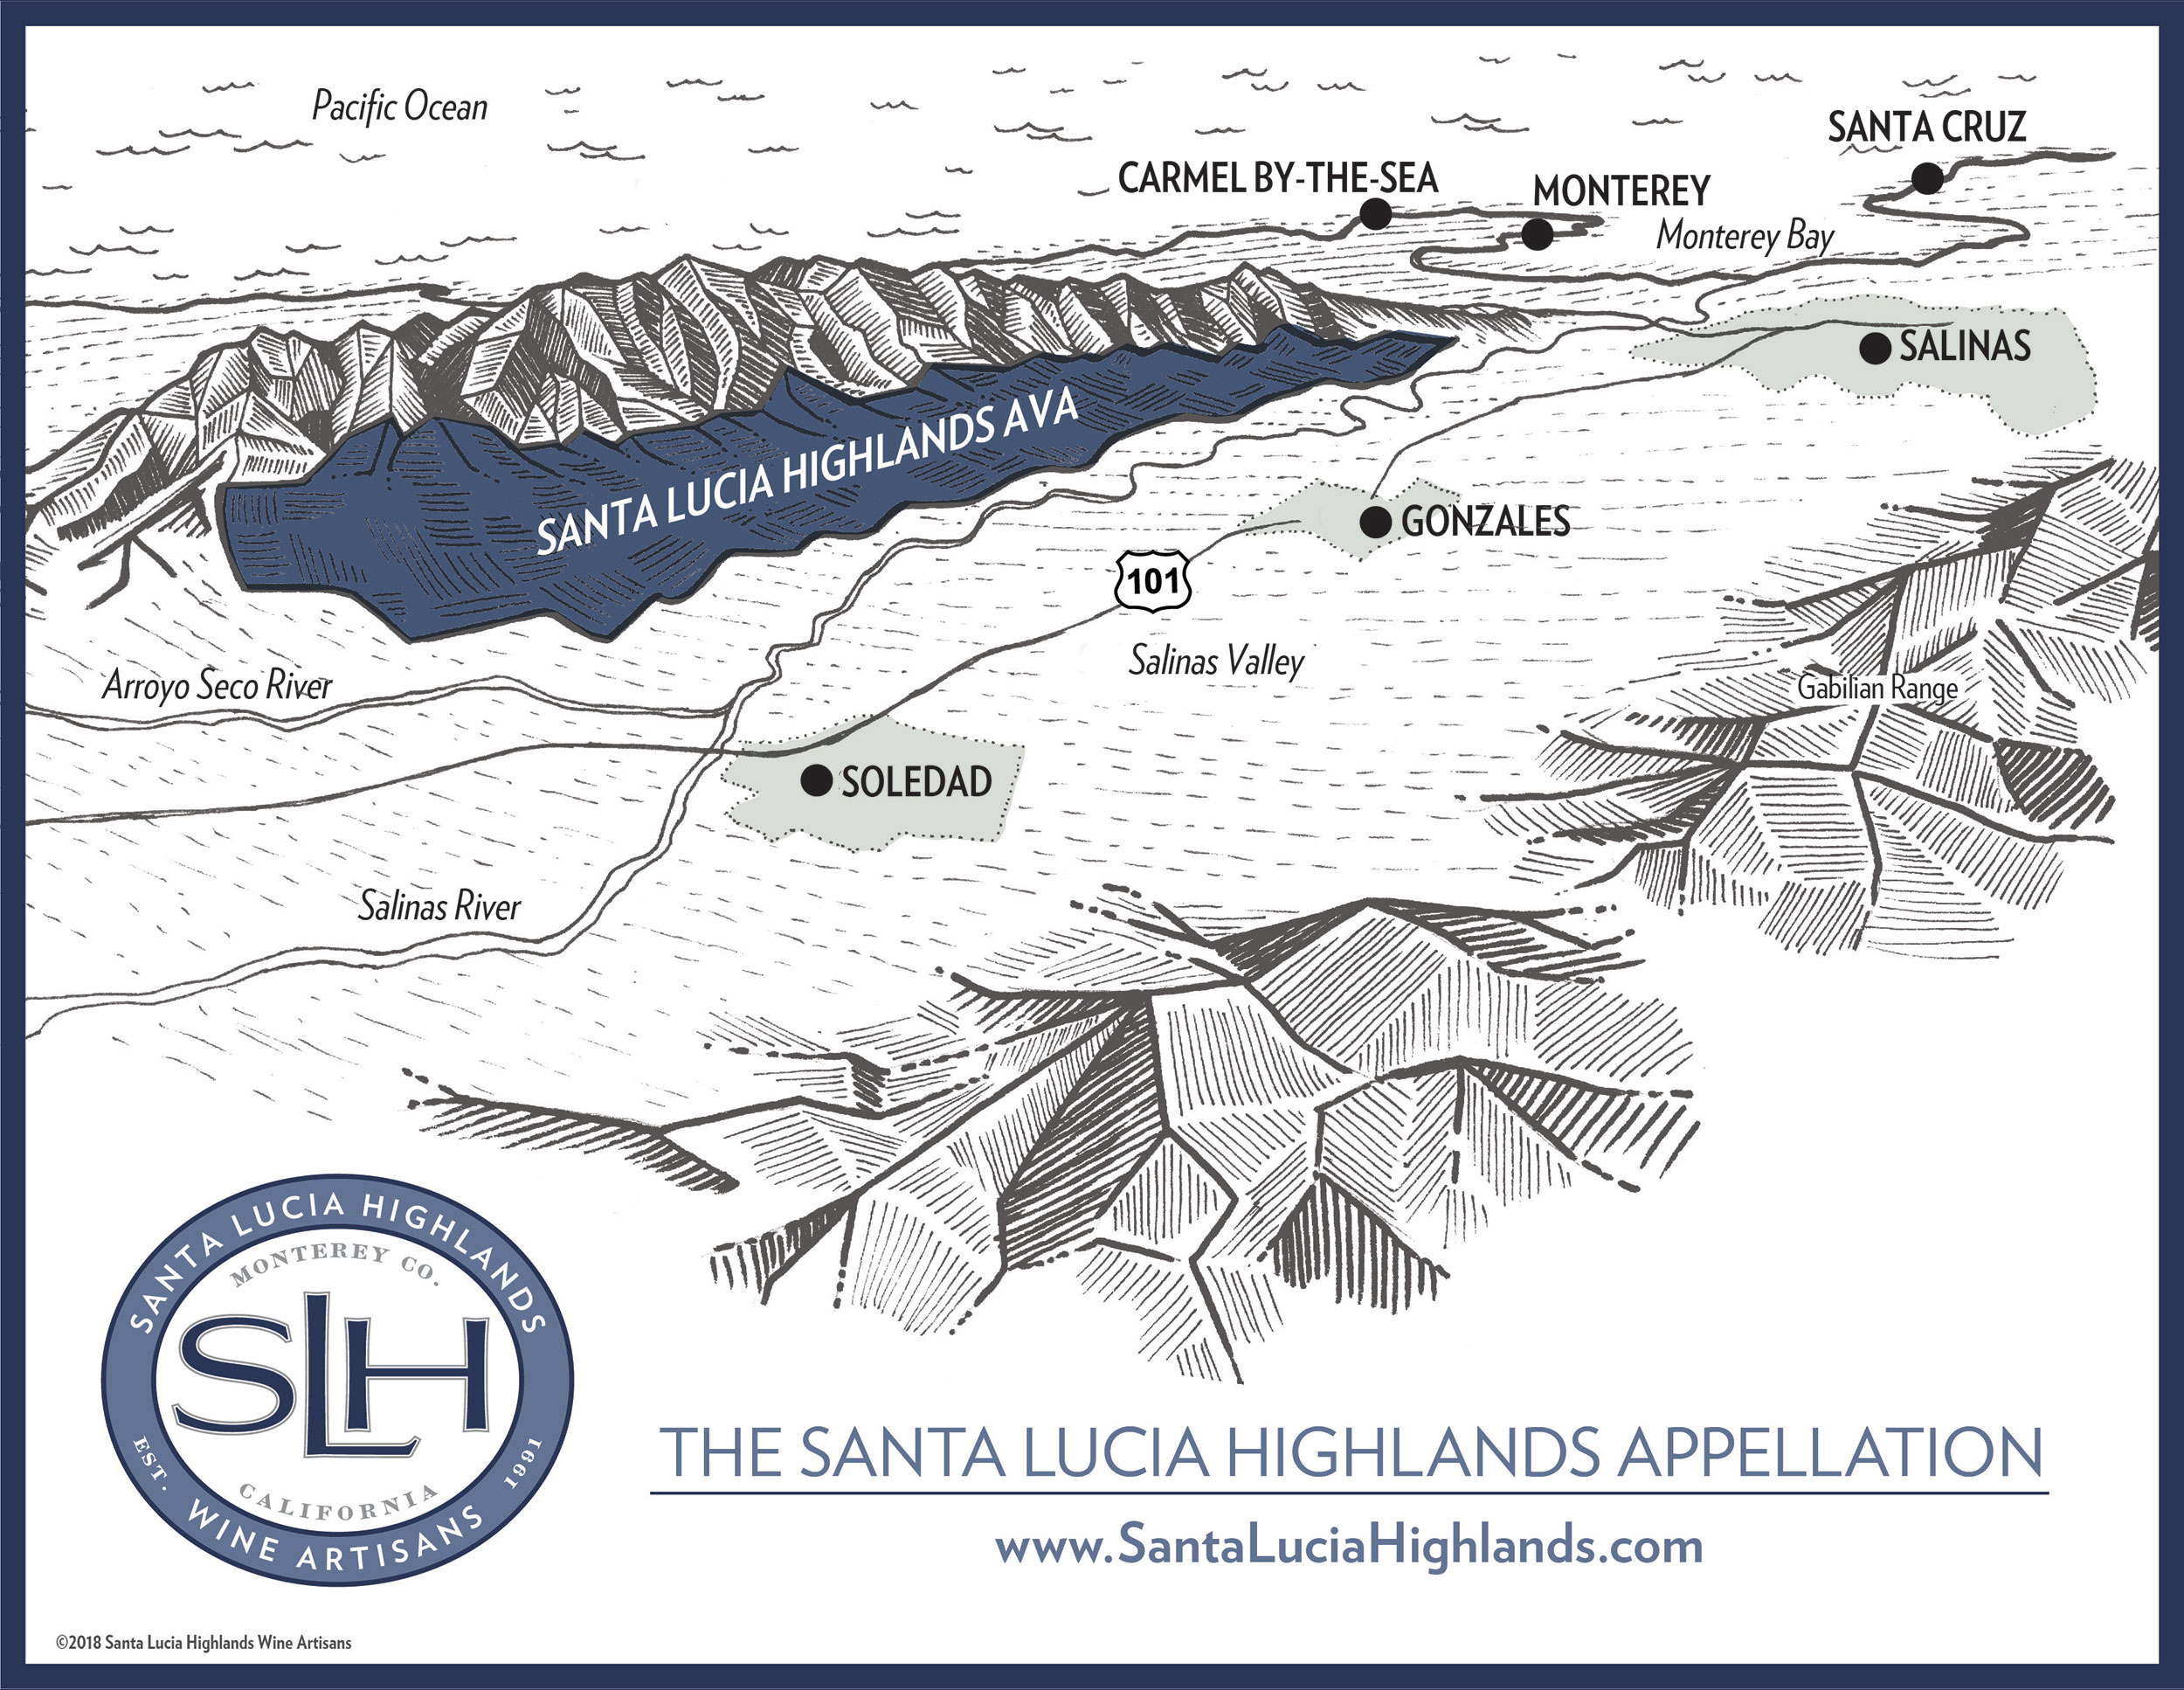 Santa Lucia Highlands AVA map